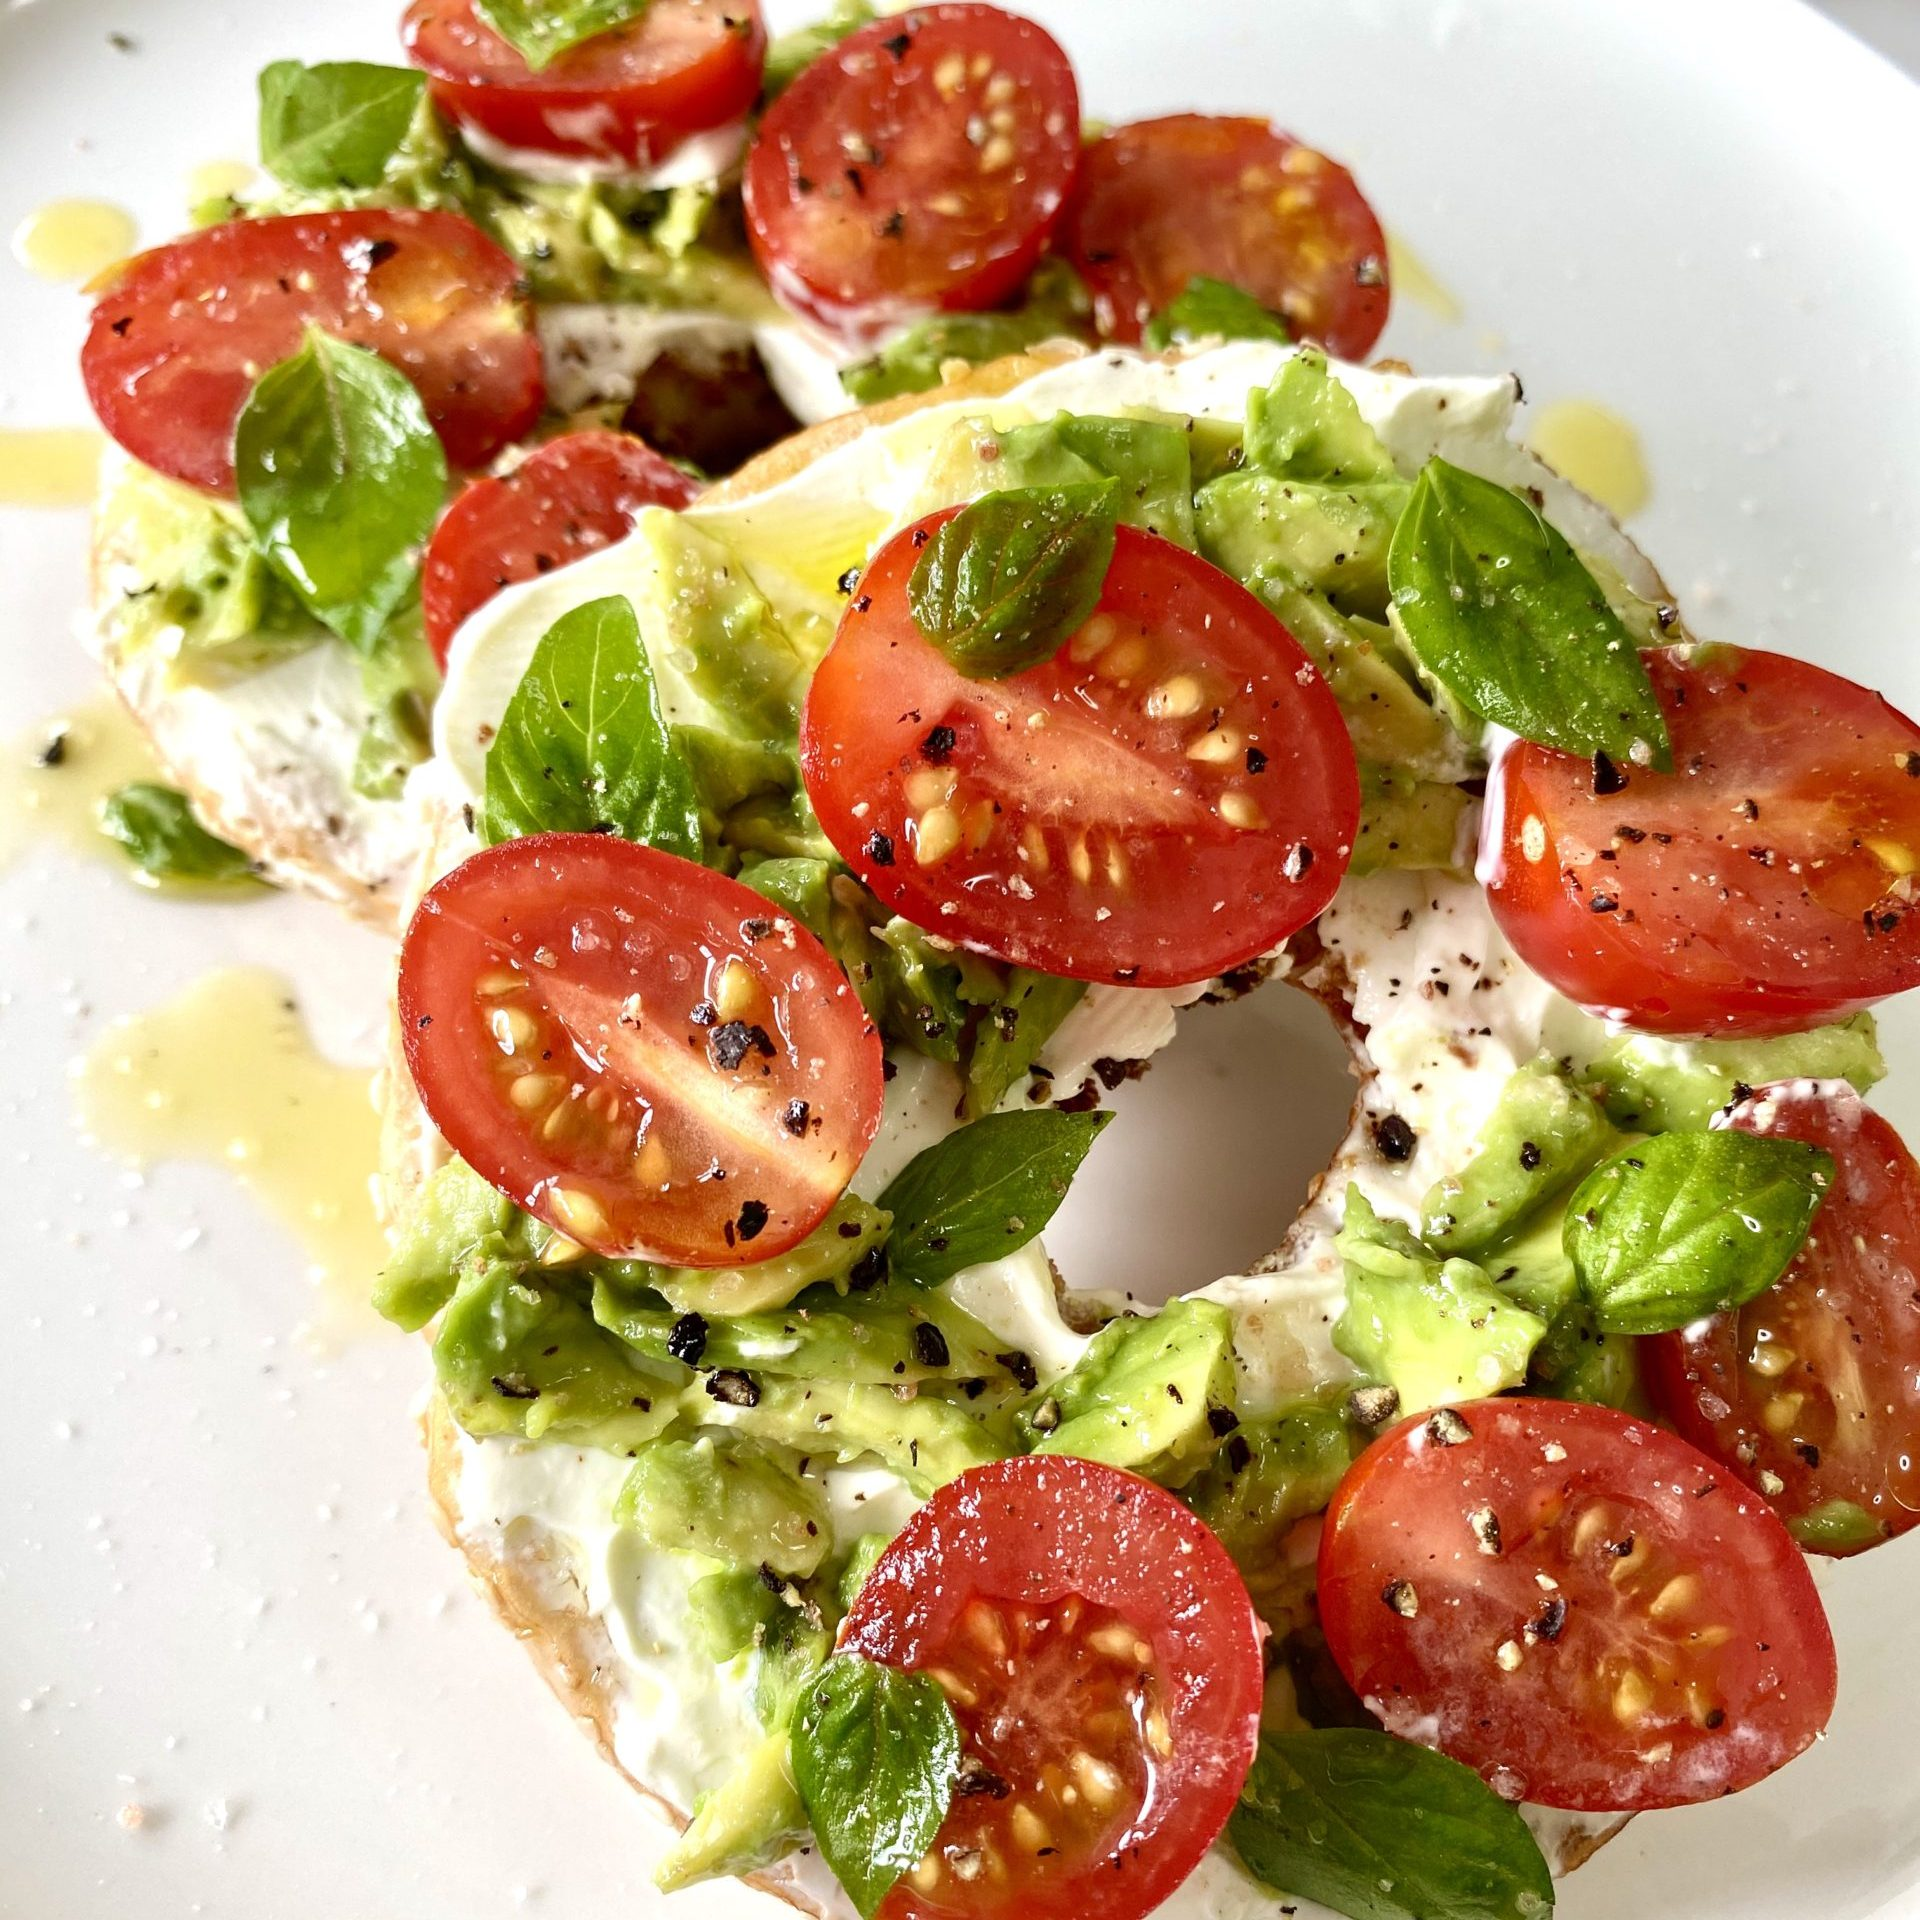 Avocado tomato and basil bagels with lemon and fennel infused olive oil drizzle